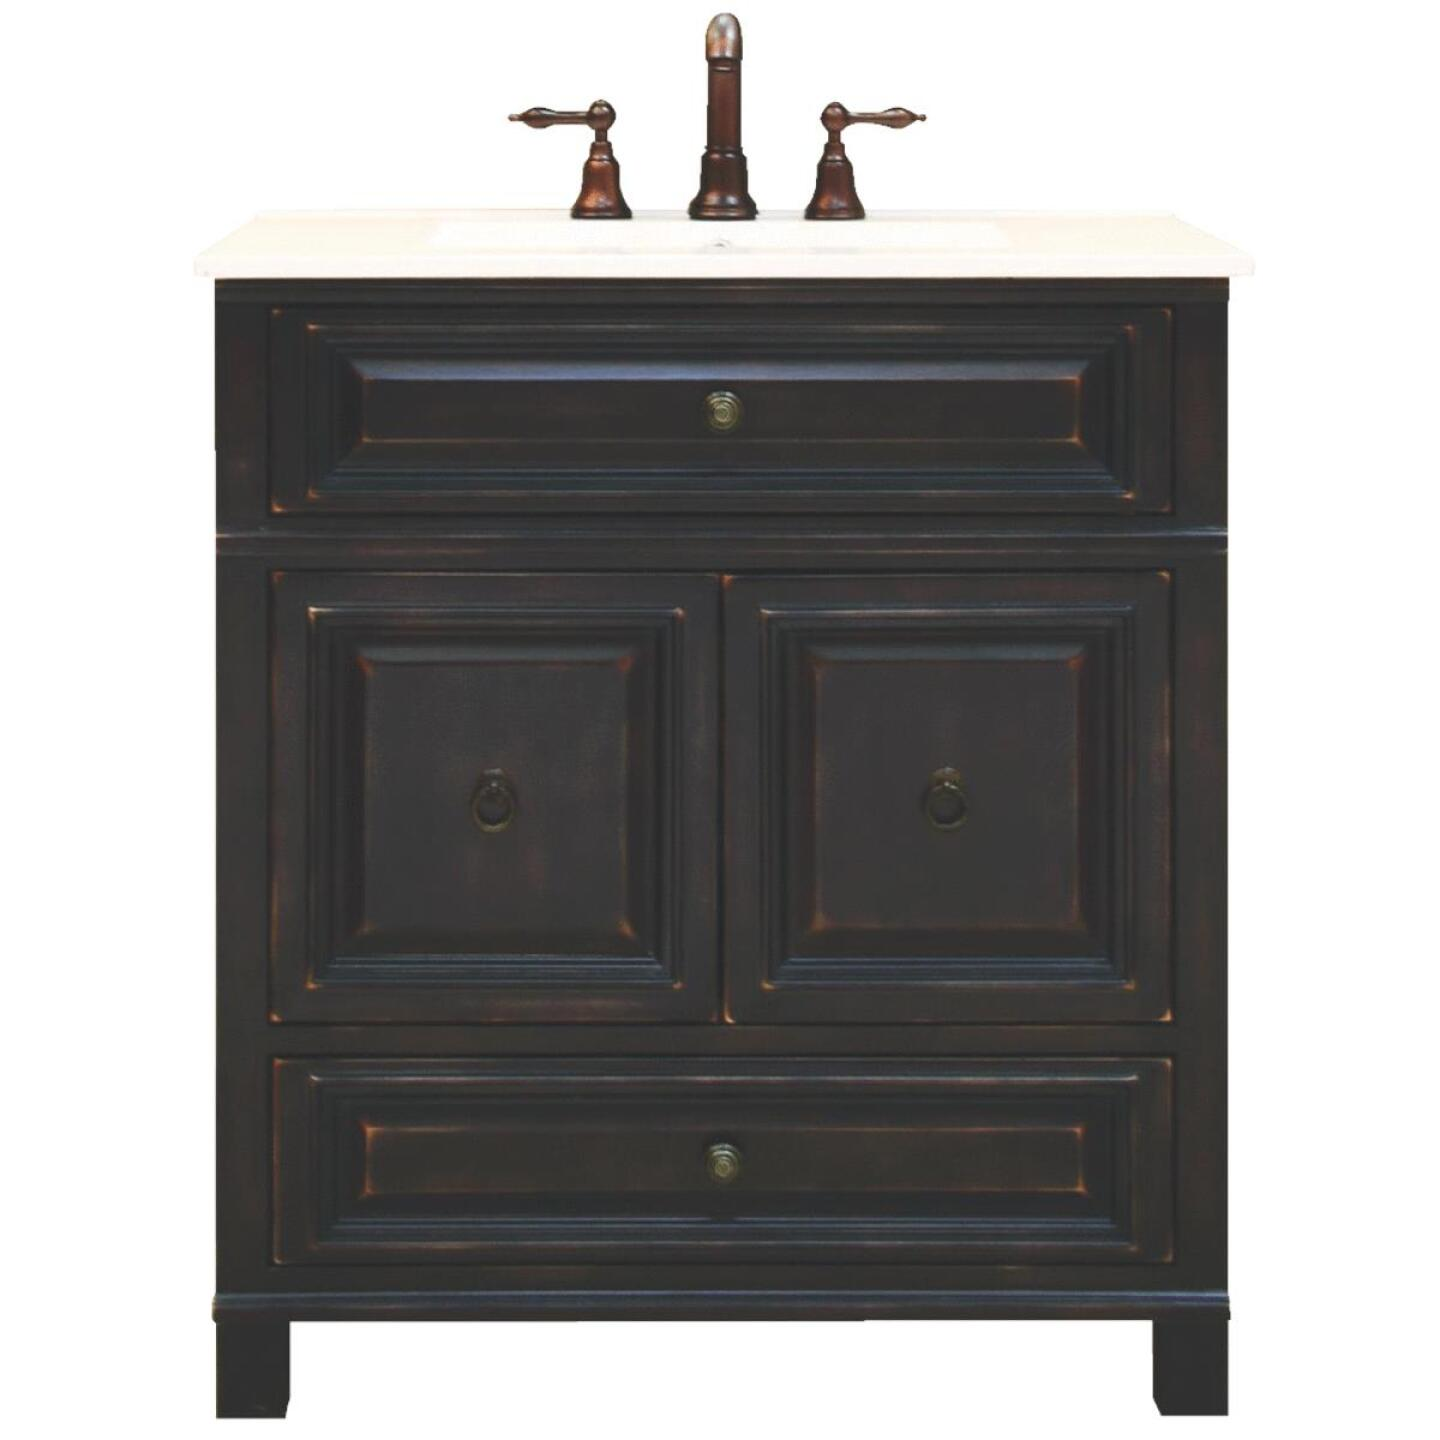 Sunny Wood Barton Hill Black Onyx 30 In. W x 34 In. H x 21 In. D Vanity Base, 2 Door/1 Drawer Image 9